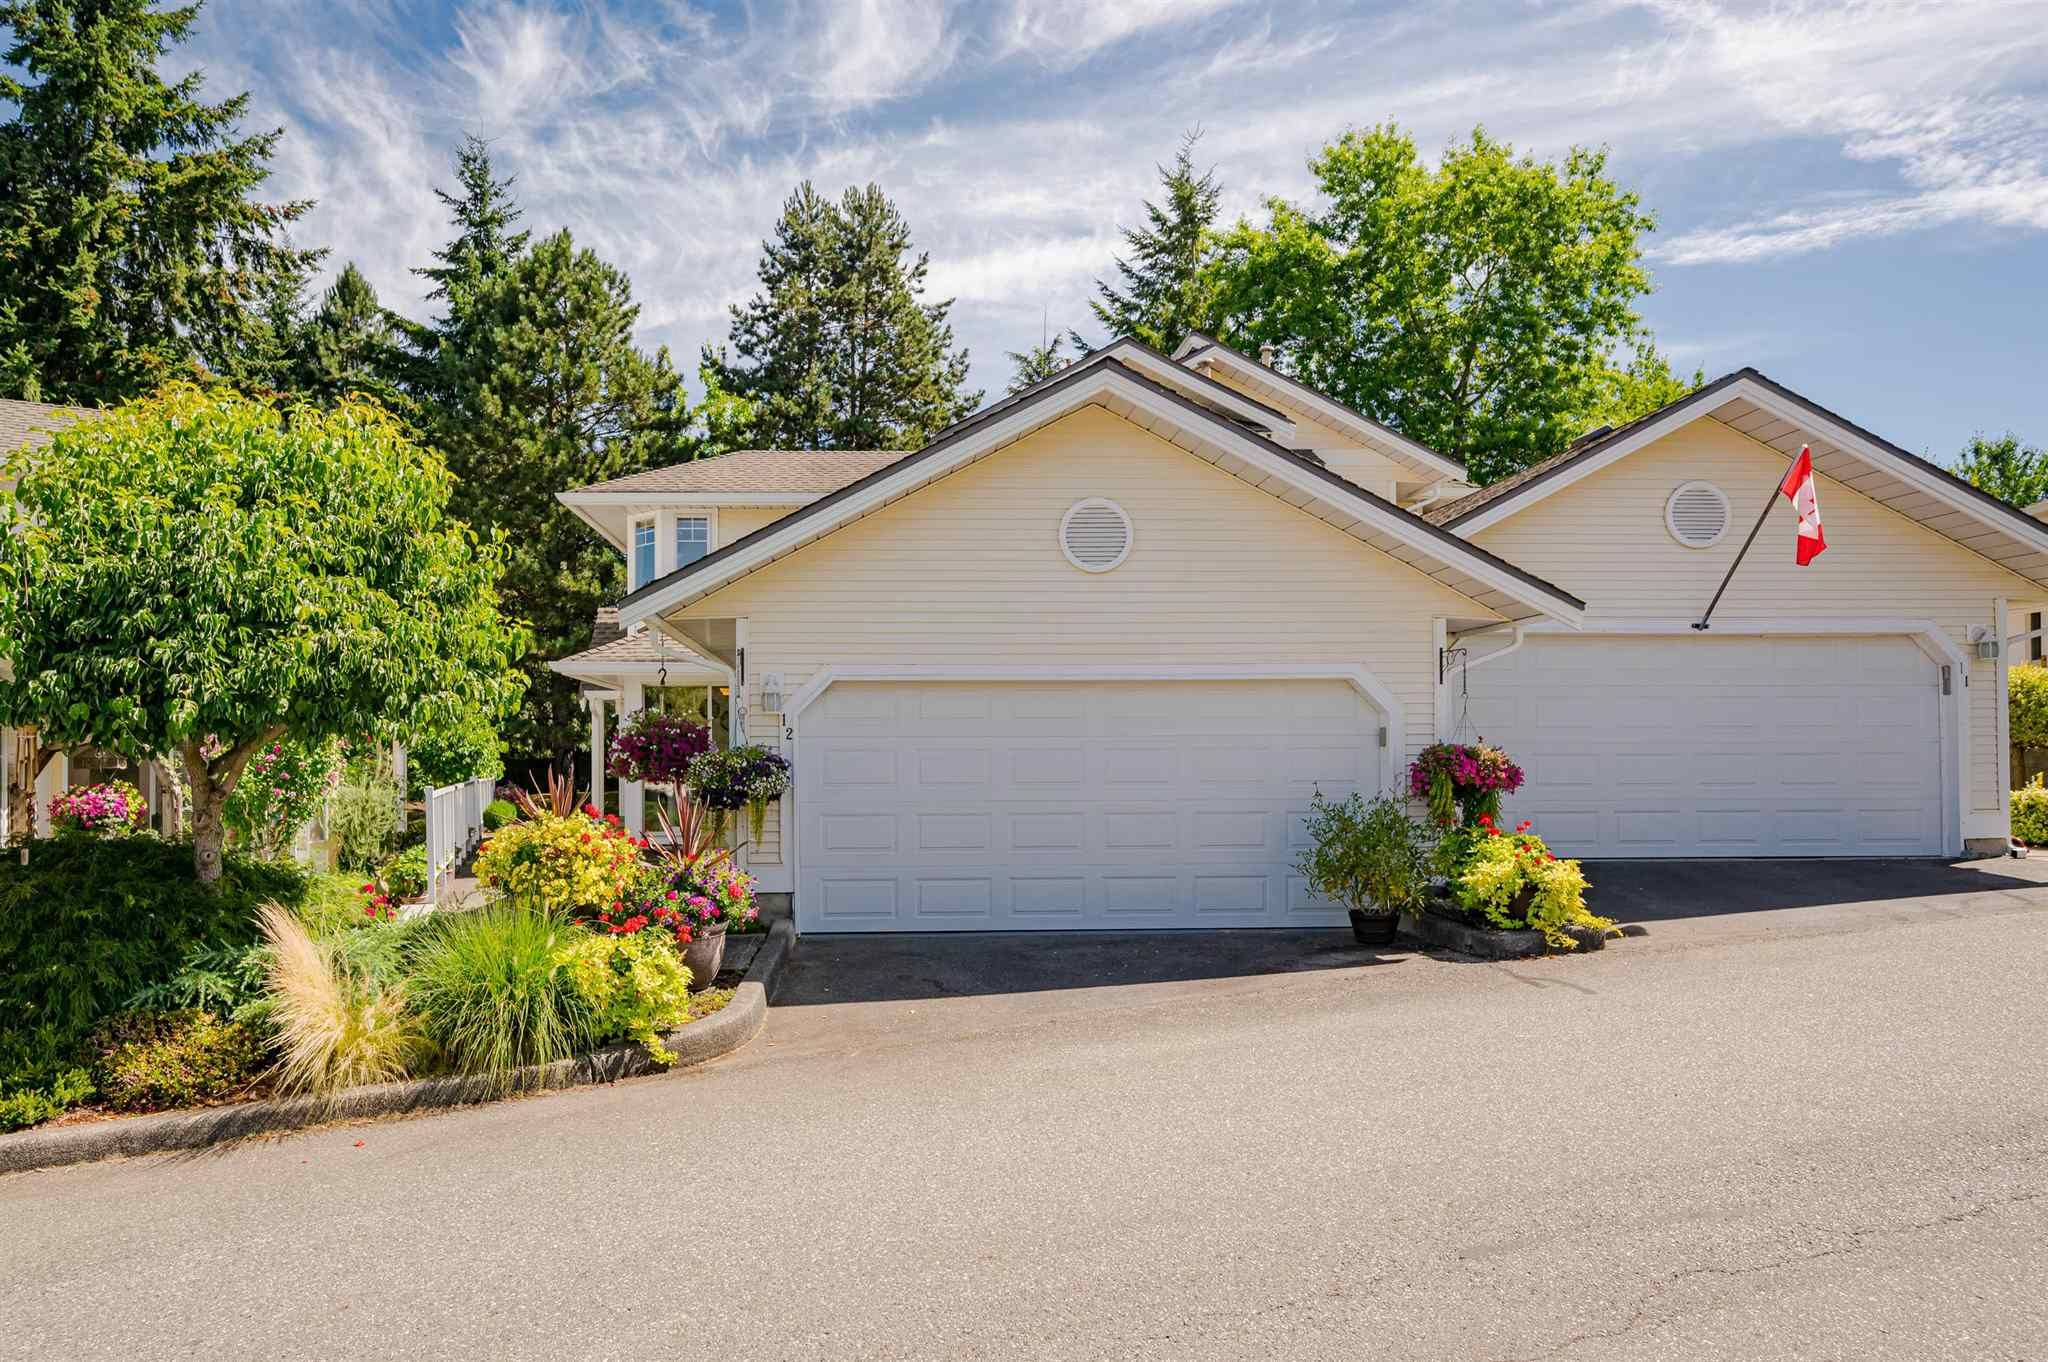 """Main Photo: 12 8737 212 Street in Langley: Walnut Grove Townhouse for sale in """"Chartwell Green"""" : MLS®# R2607047"""